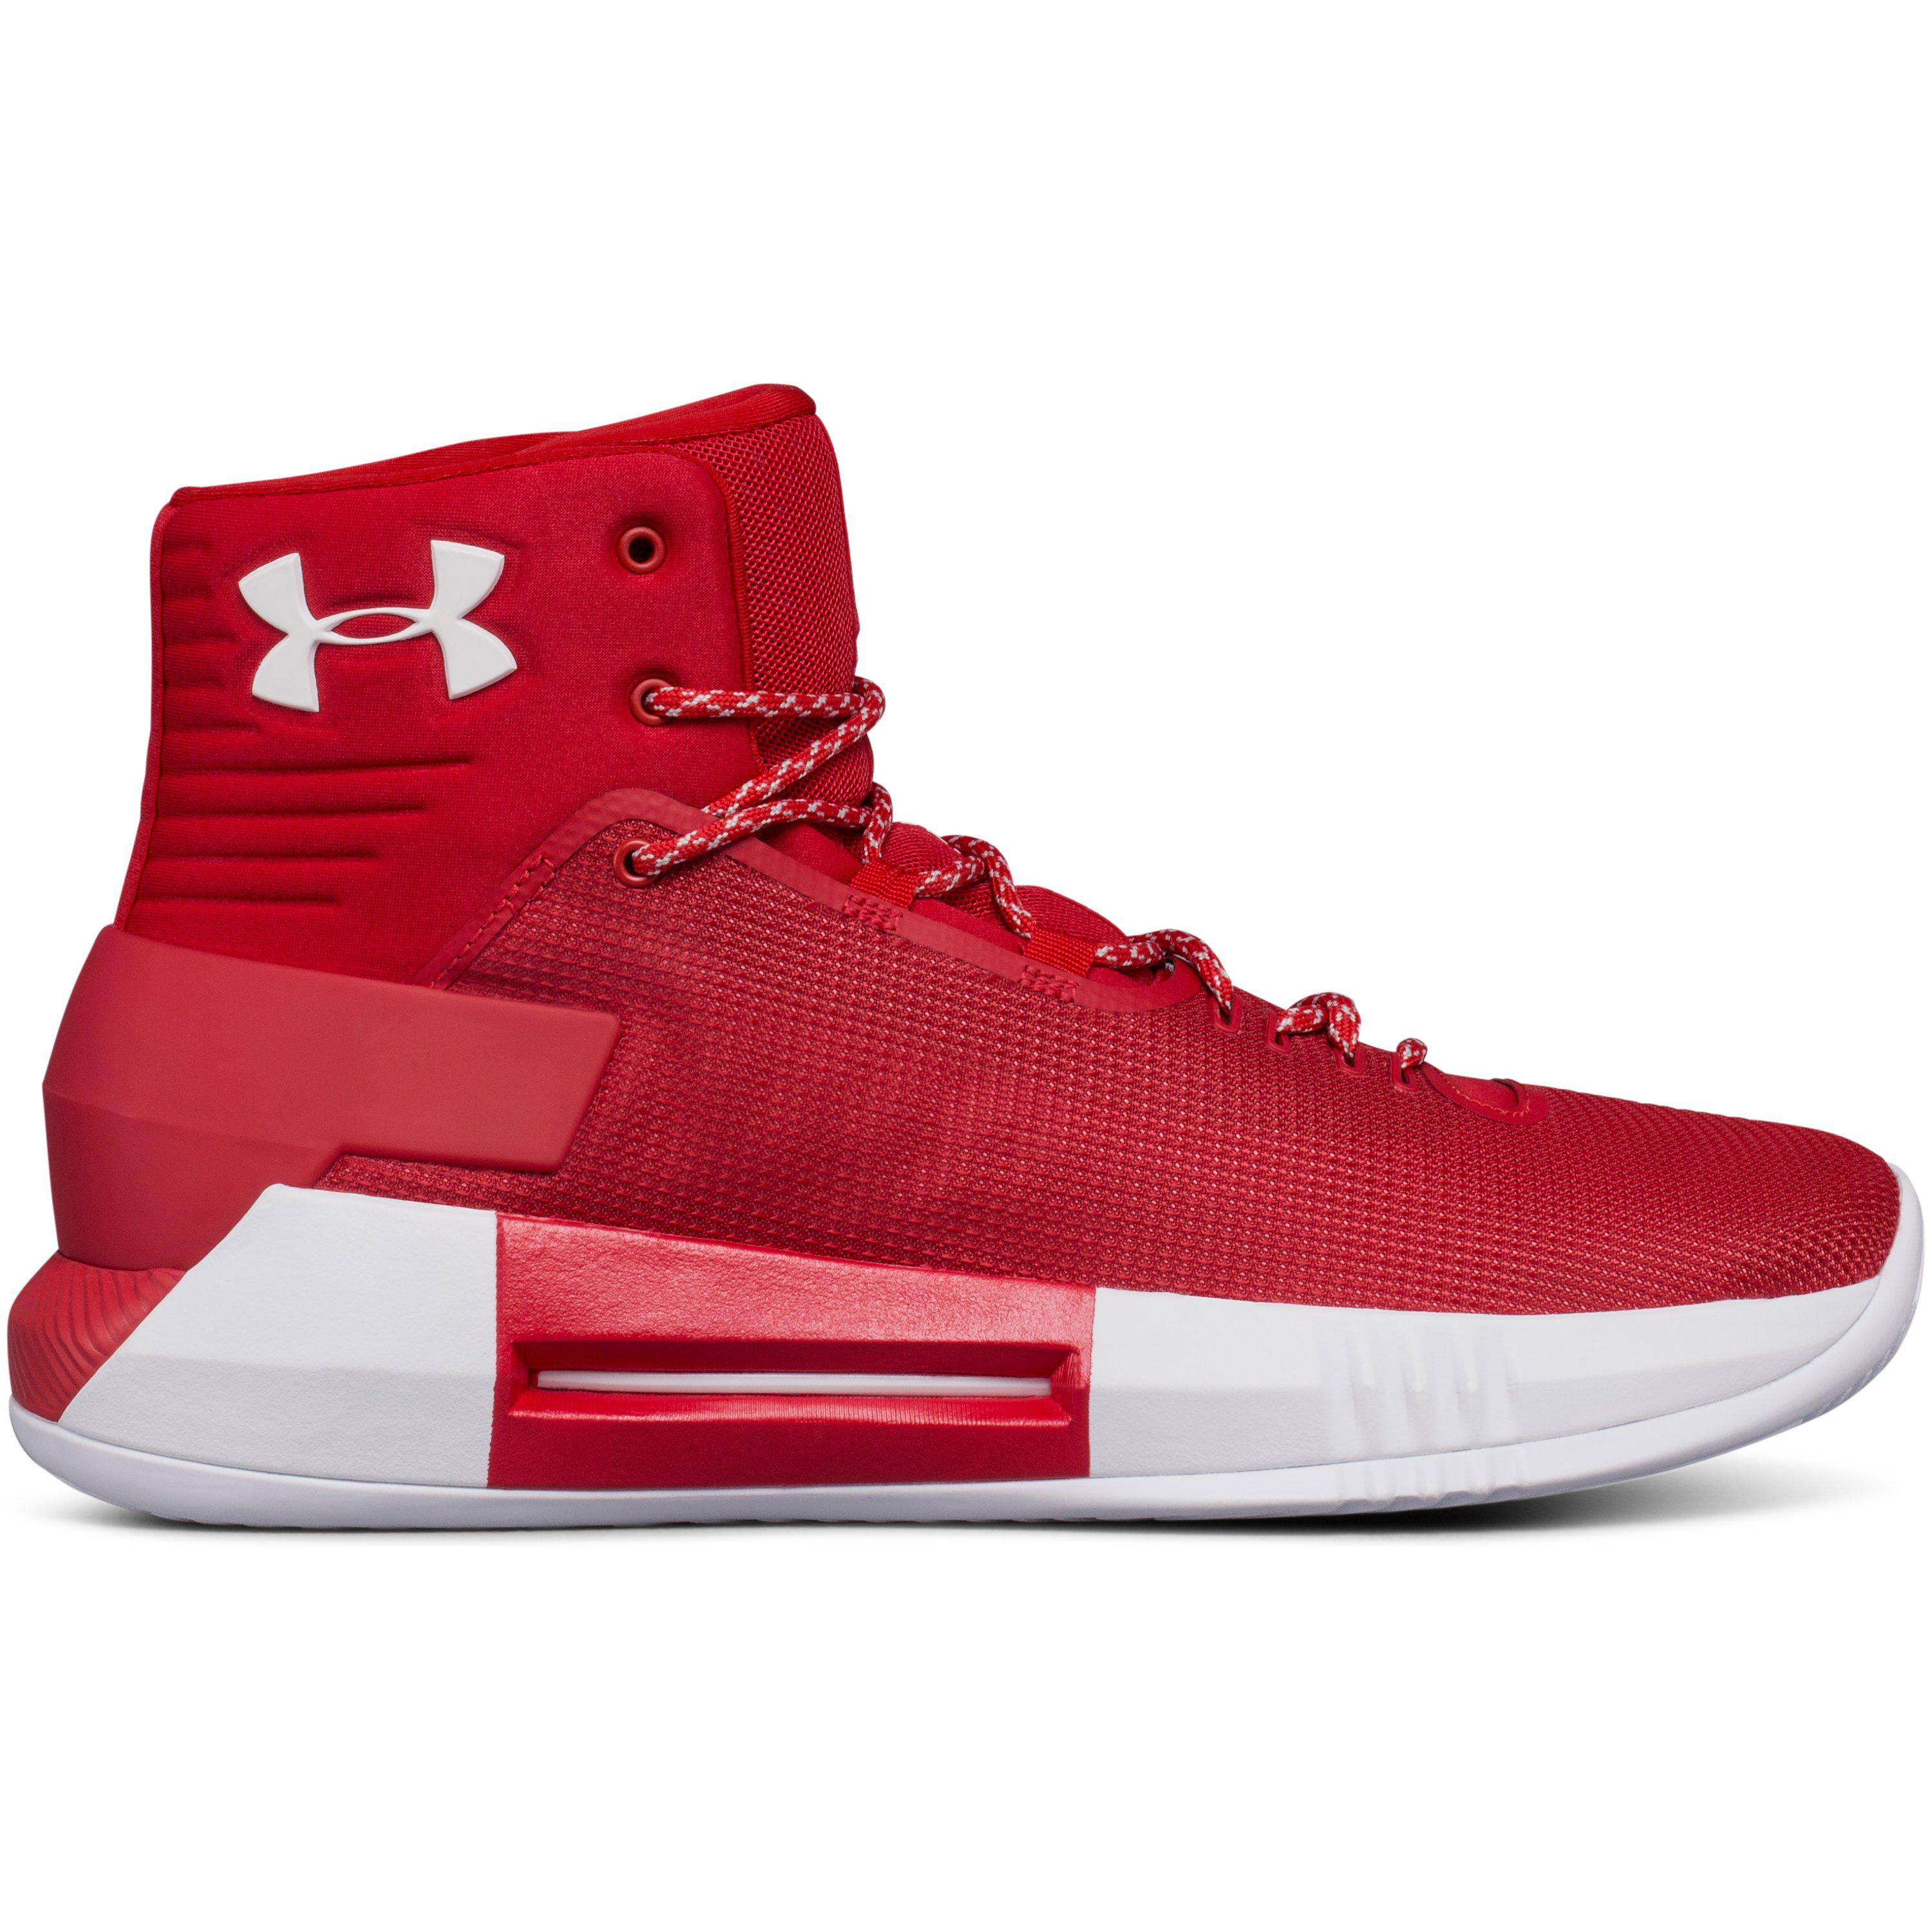 wholesale dealer 02fea a3224 Under Armour Men s Ua Team Drive 4 Basketball Shoes in Red for Men ...